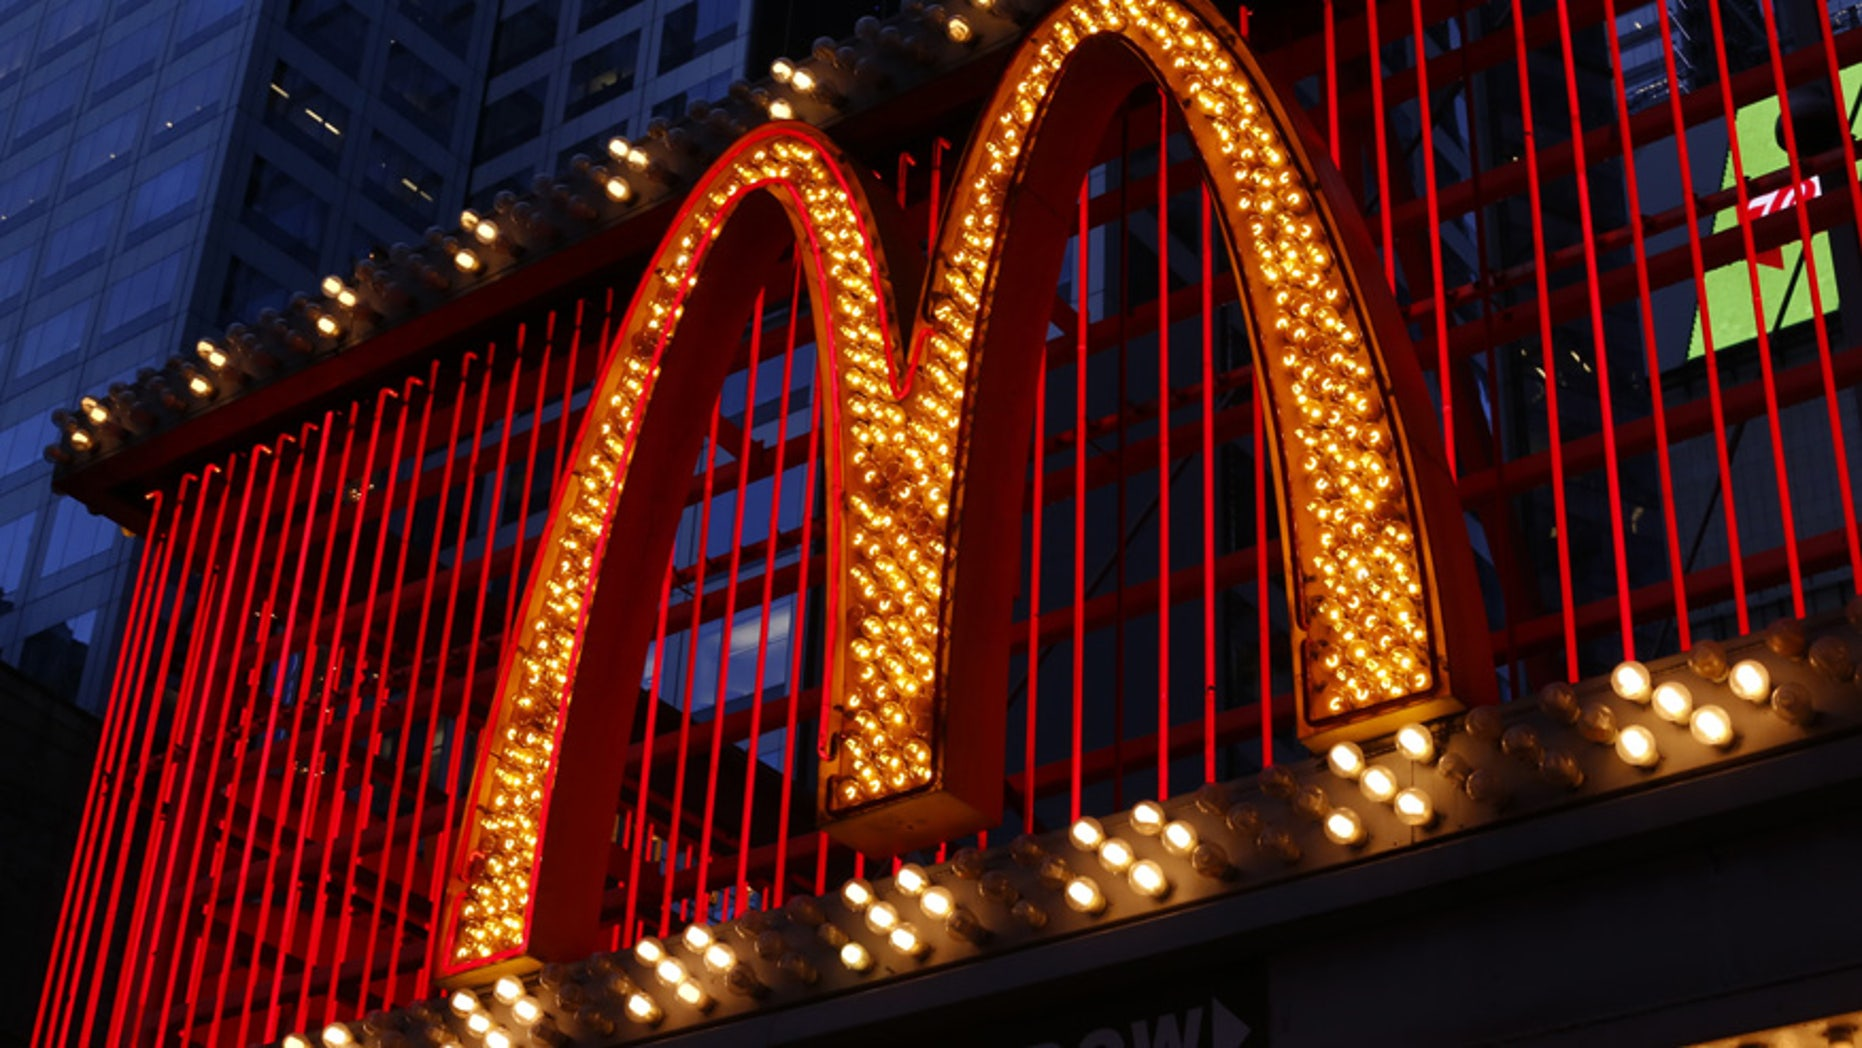 McDonald's is taking a page from the Wendy's playbook.